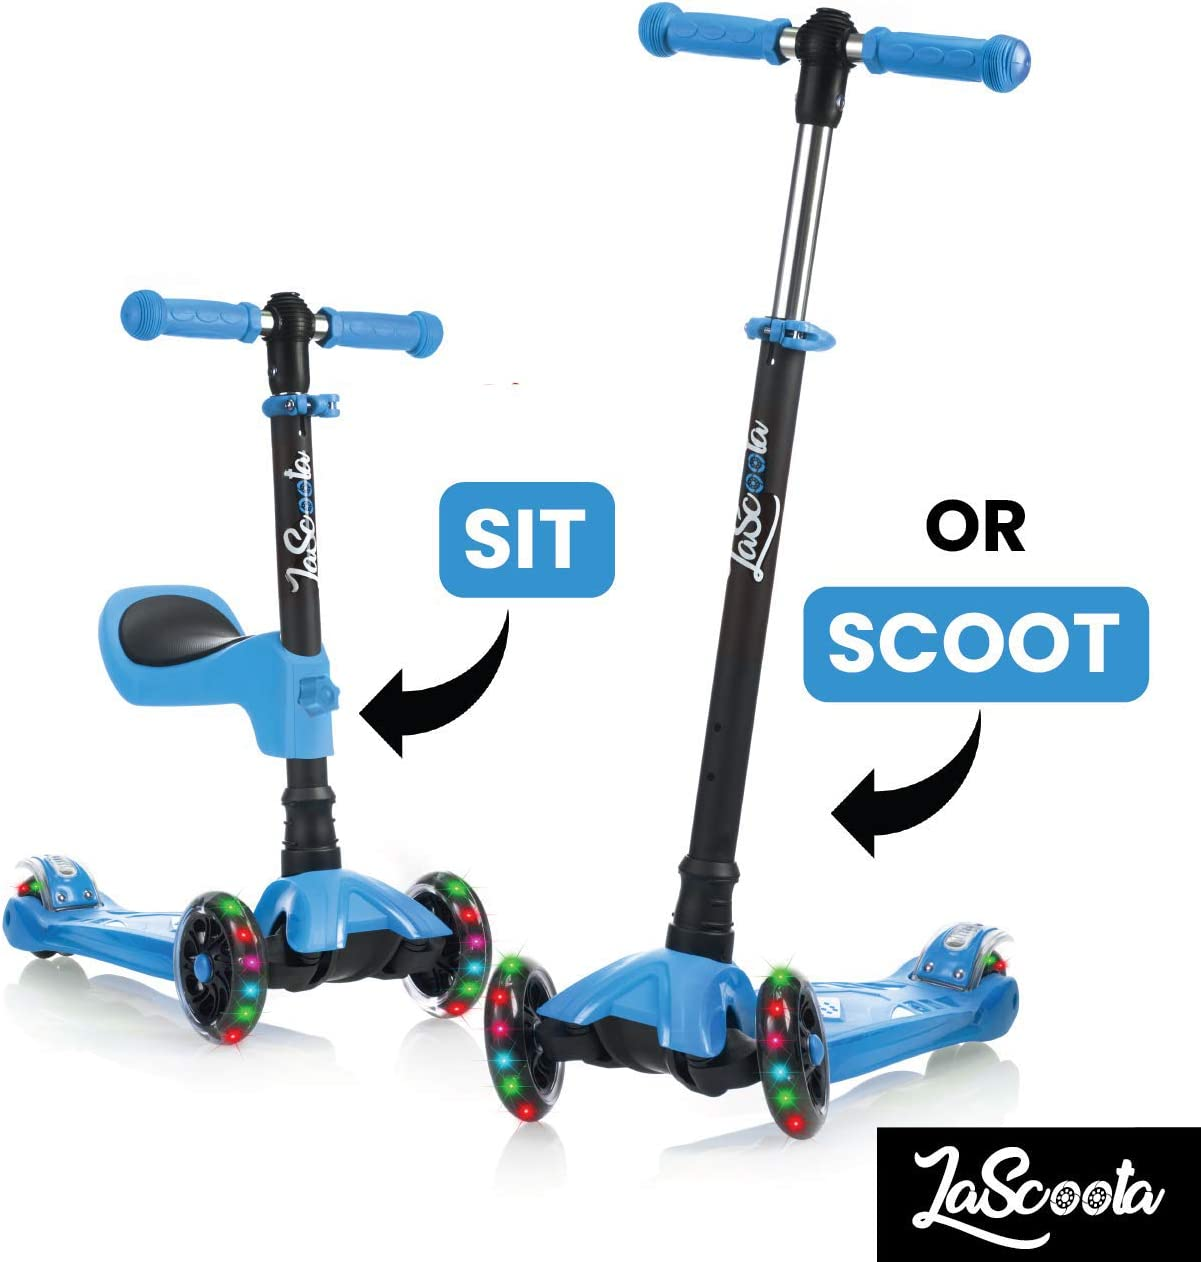 Lascoota 2-in-1 Kick Scooter with Removable Seat Great for Kids Toddlers Girls or Boys Adjustable Height w Extra-Wide Deck PU Flashing Wheels for Children from 2-14 Years Old